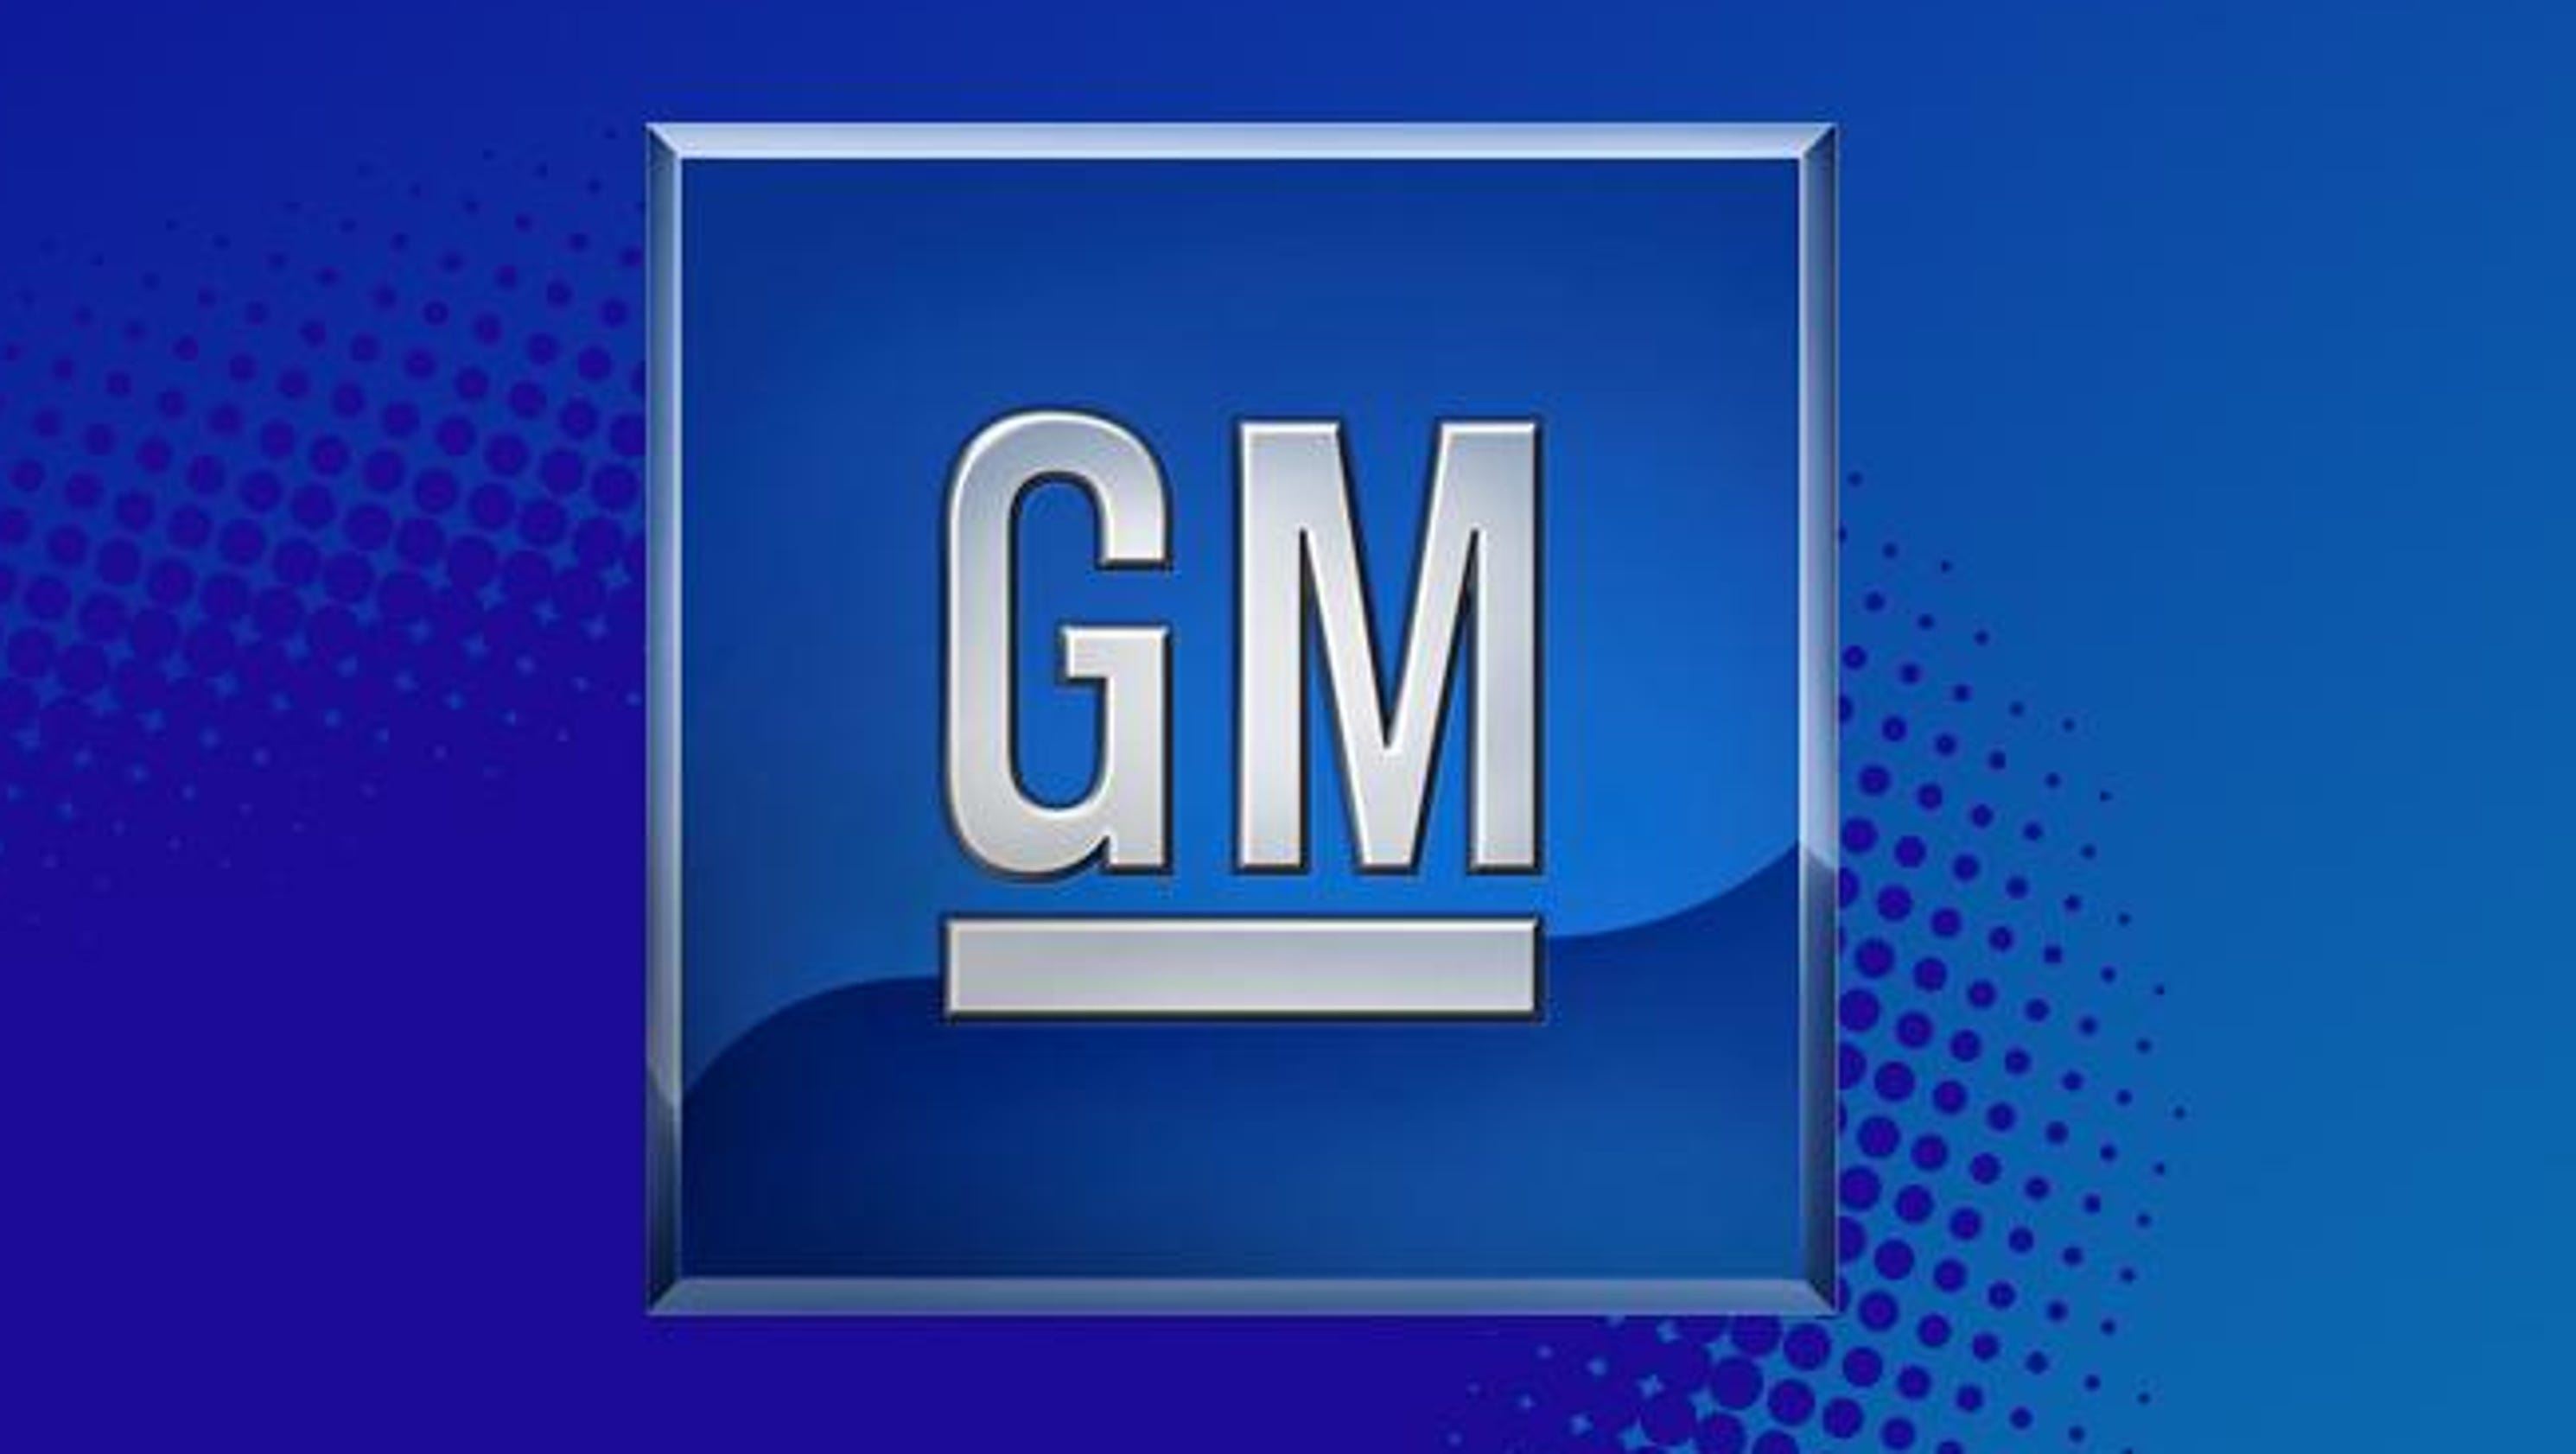 general motors transaction exposure The loan is destroyed in the transaction  undiversified exposure would be exacerbated with a large stock position in if general motors, for example.